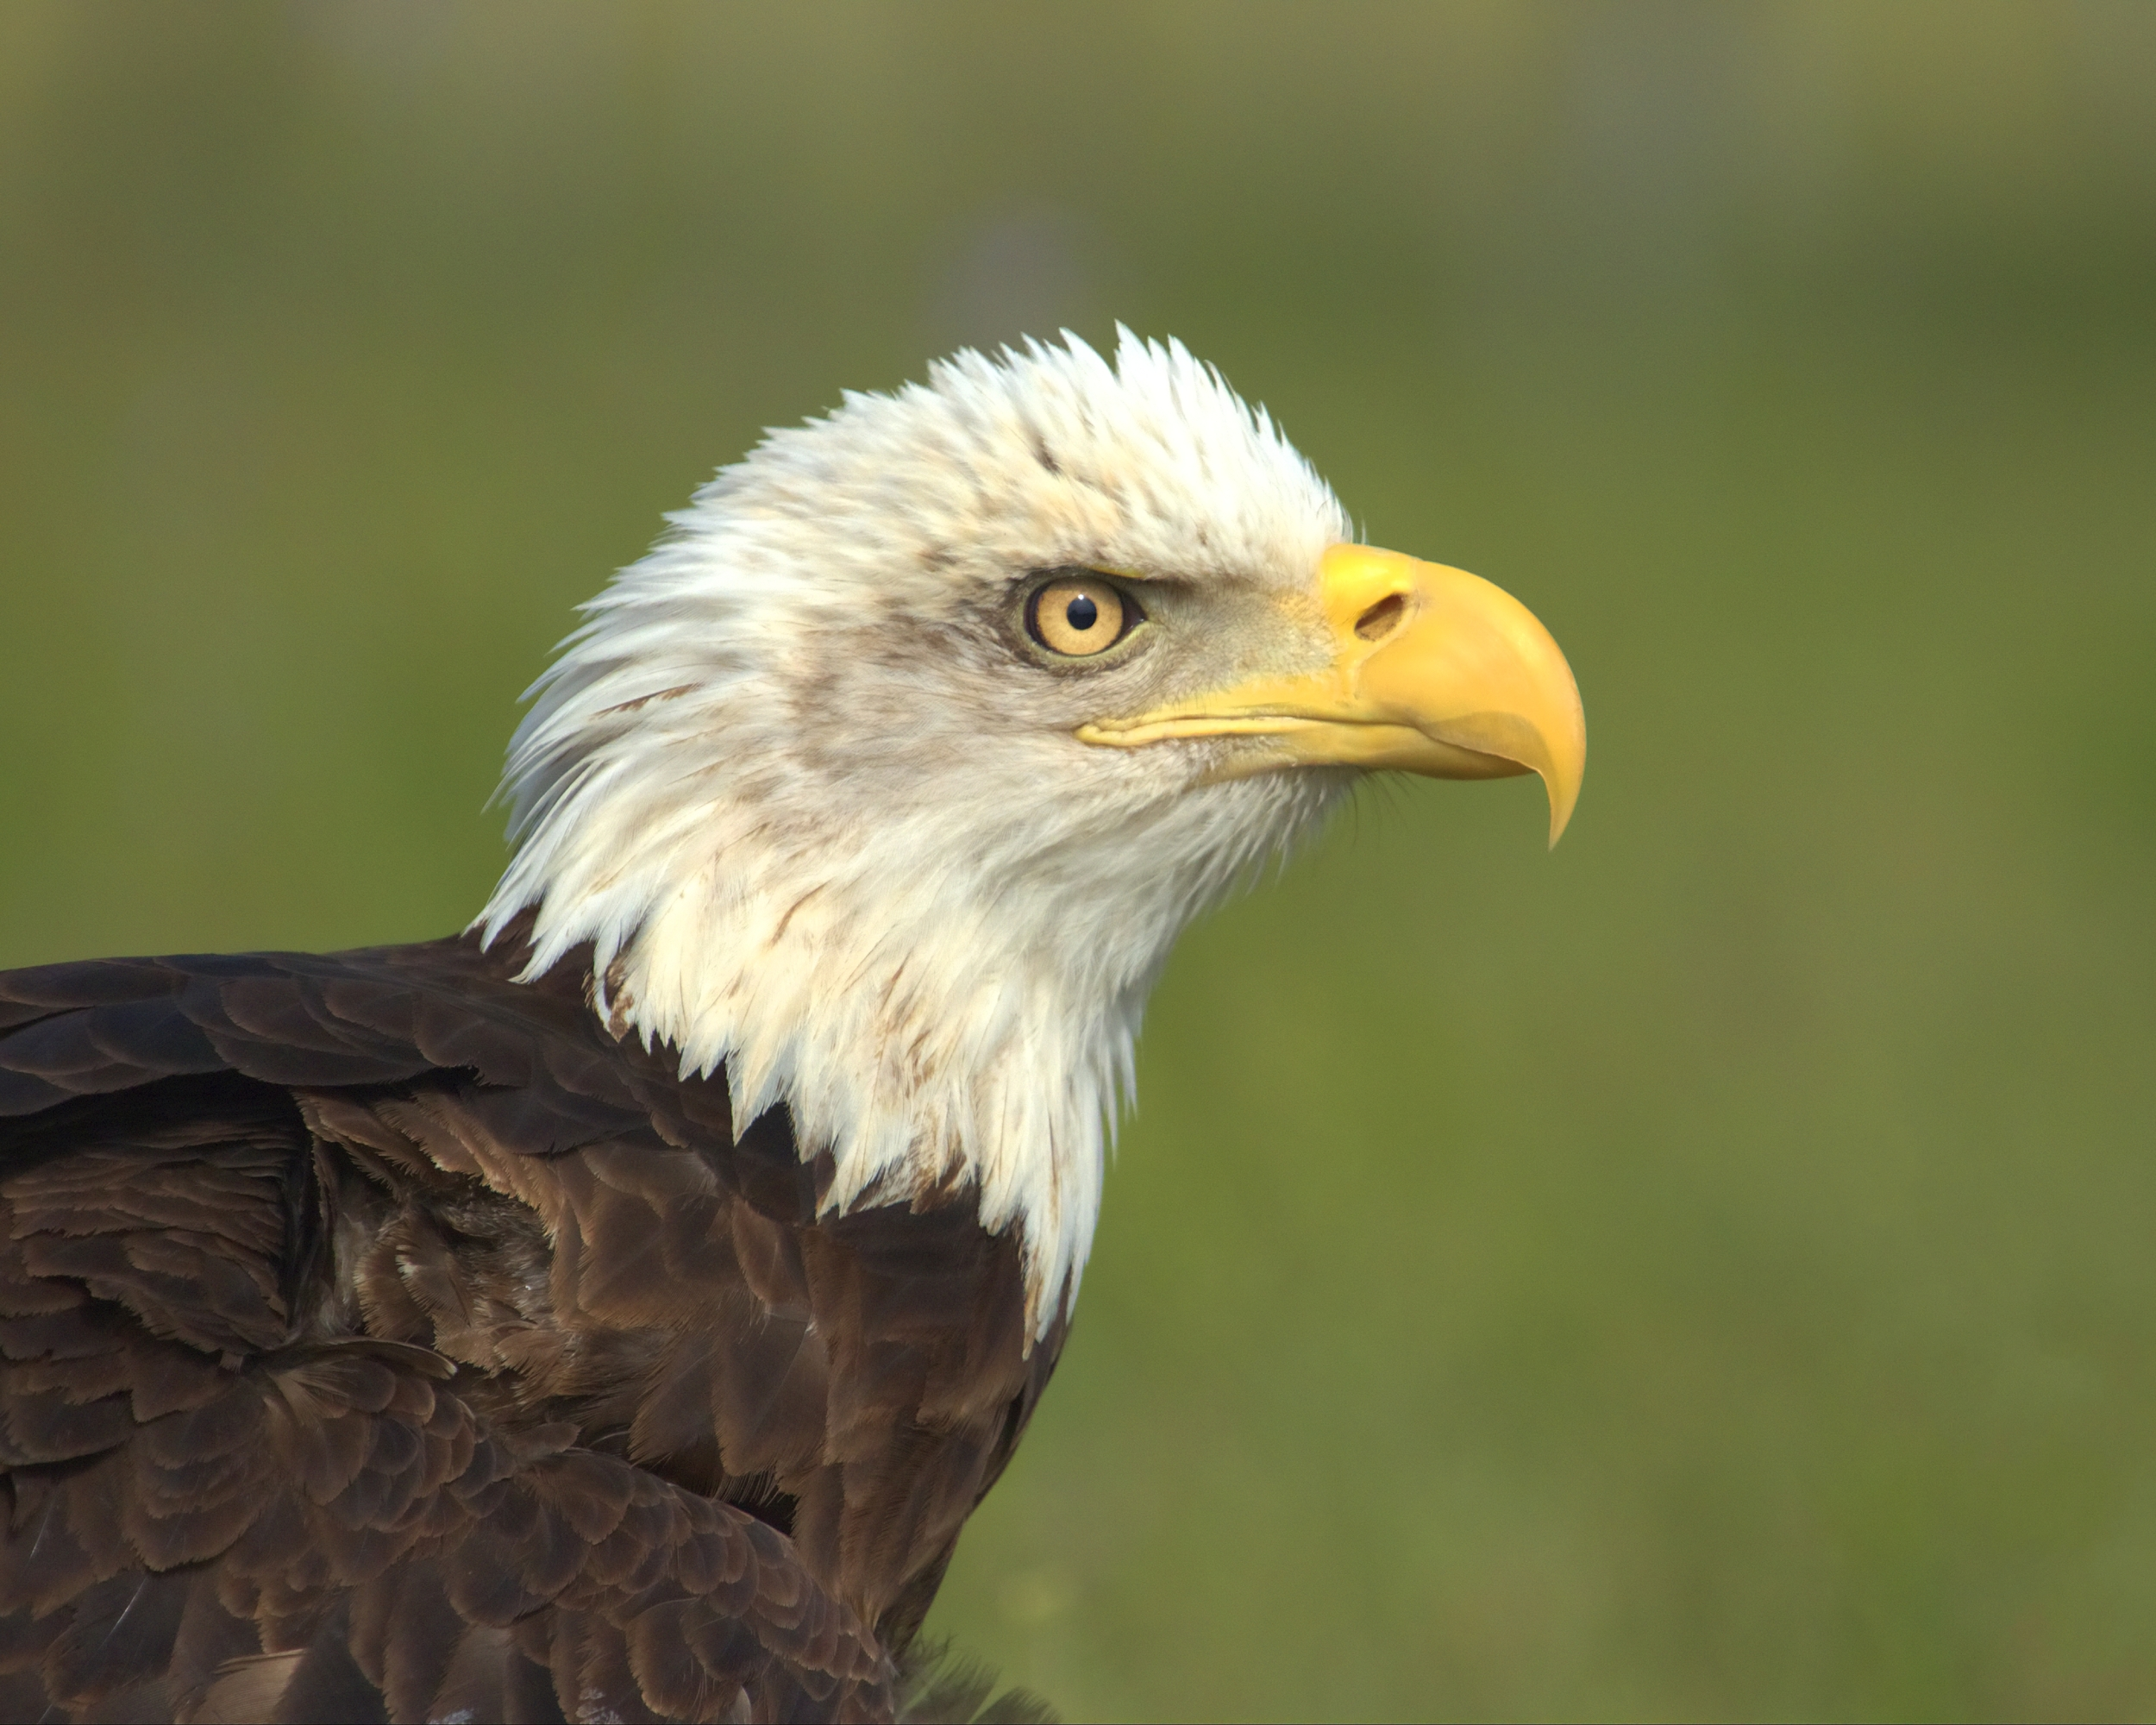 Ike, the iconic Bald Eagle, suffered a wing injury as a nestling.